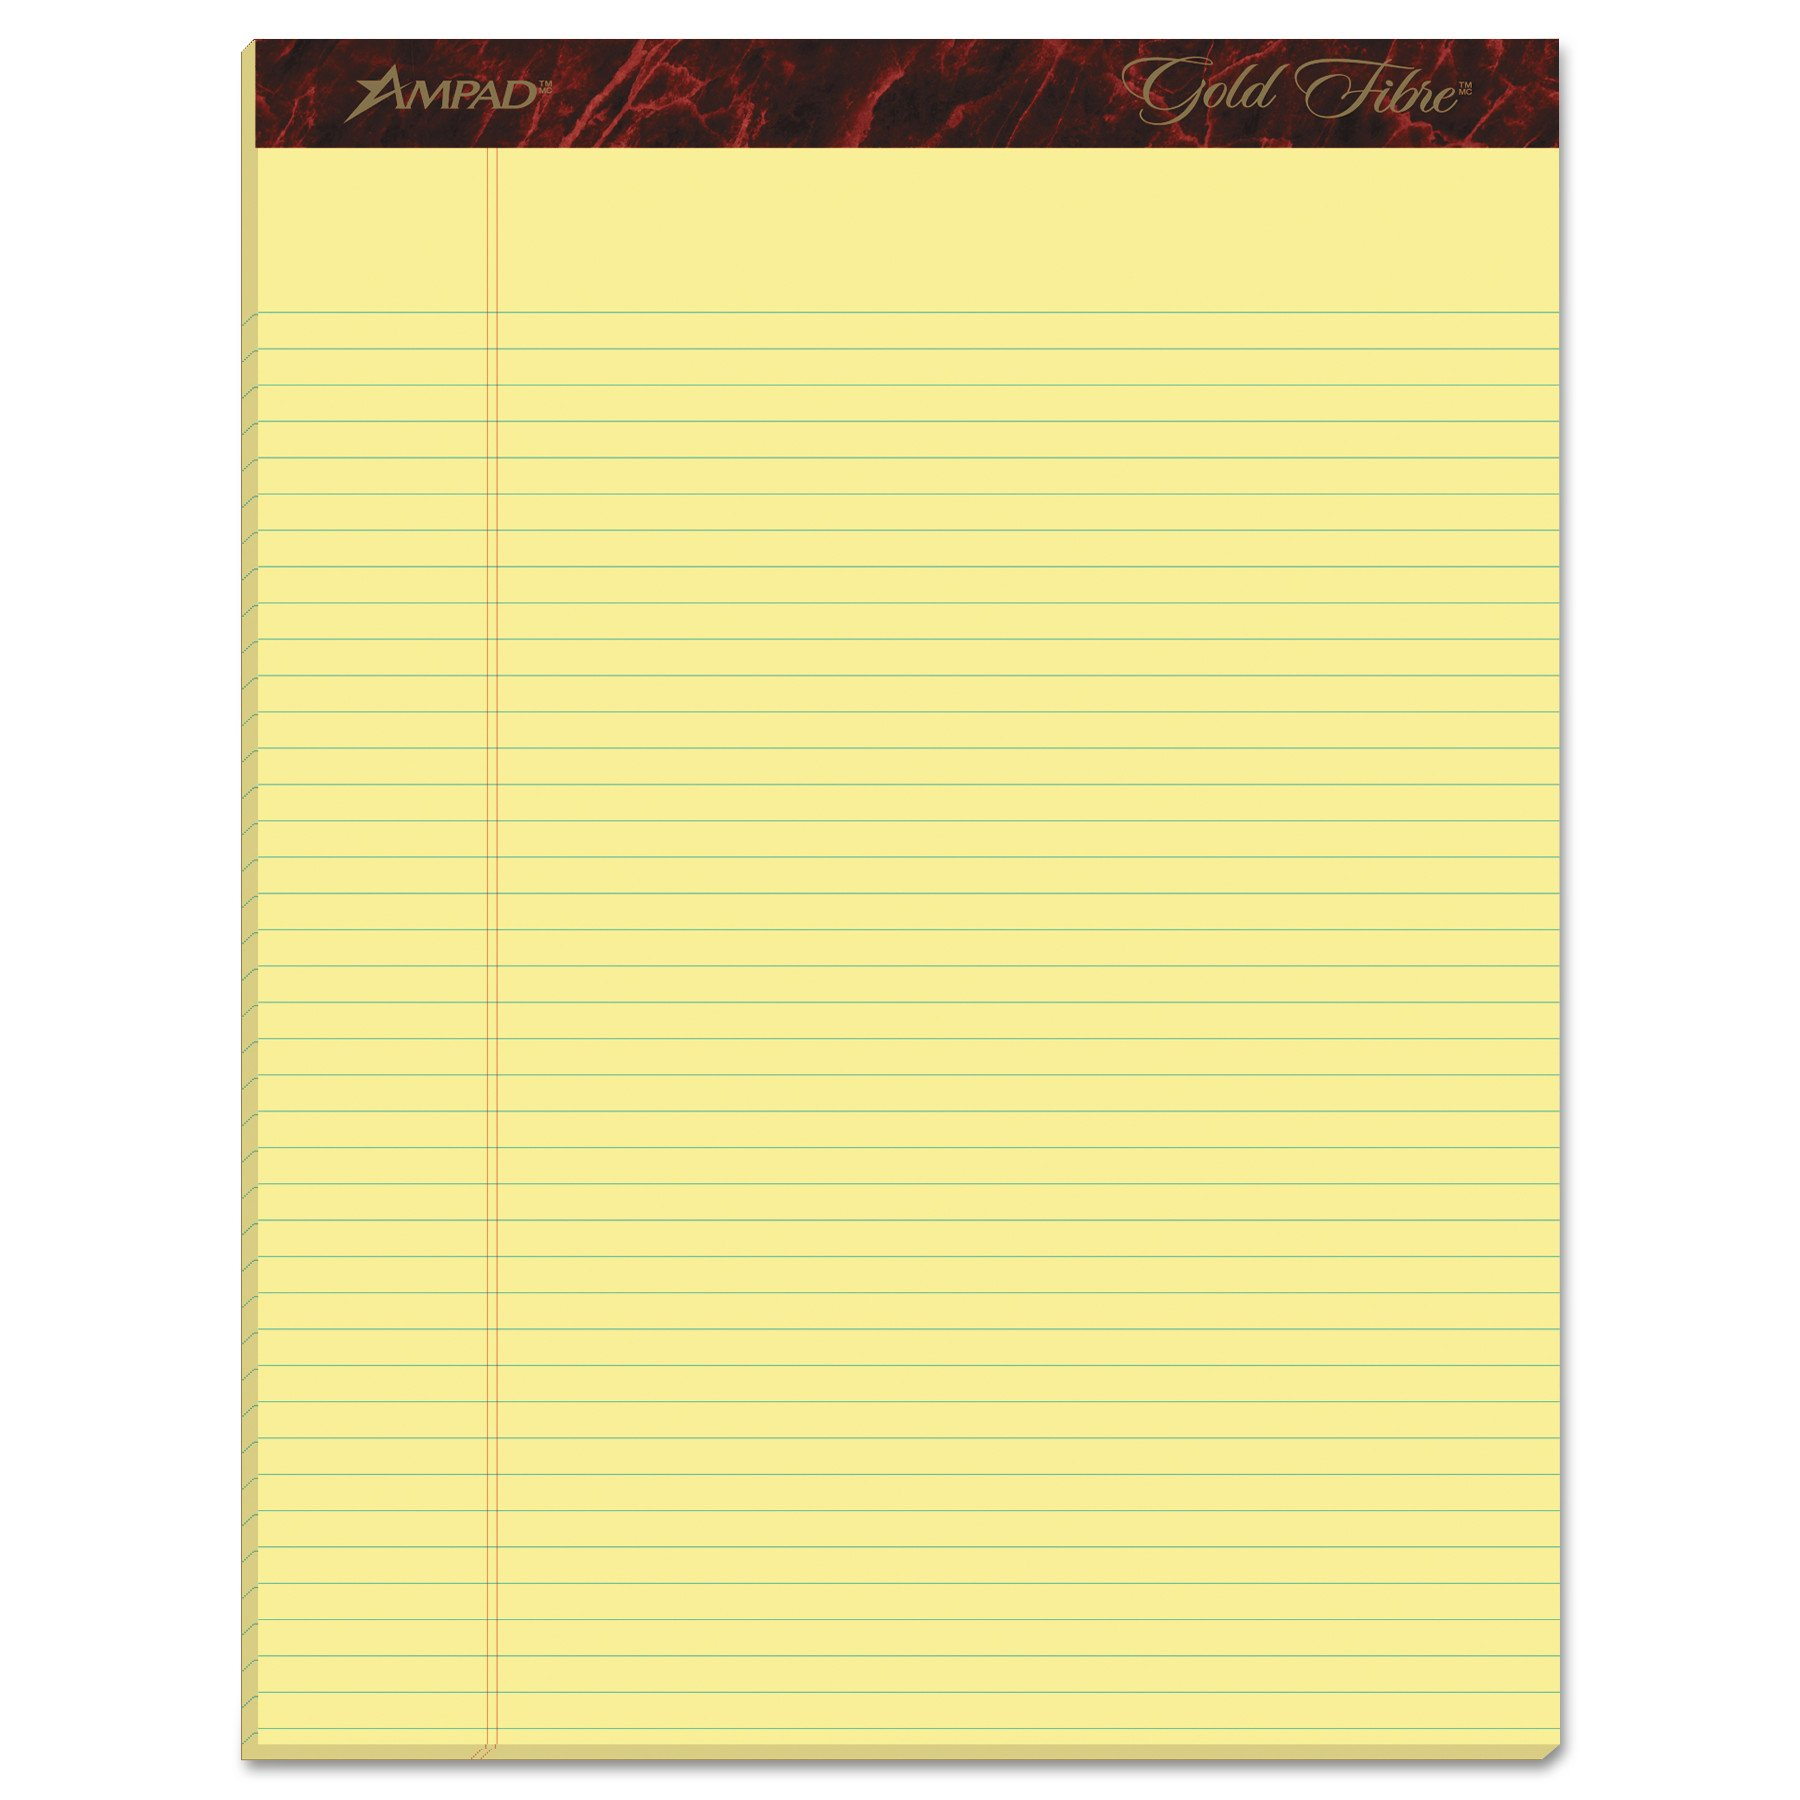 Esselte ESS20022 Ampad Gold Fibre Pads, 8 1/2 x 11 3/4, Canary, 50 Sheets (Pack of 12) by Esselte